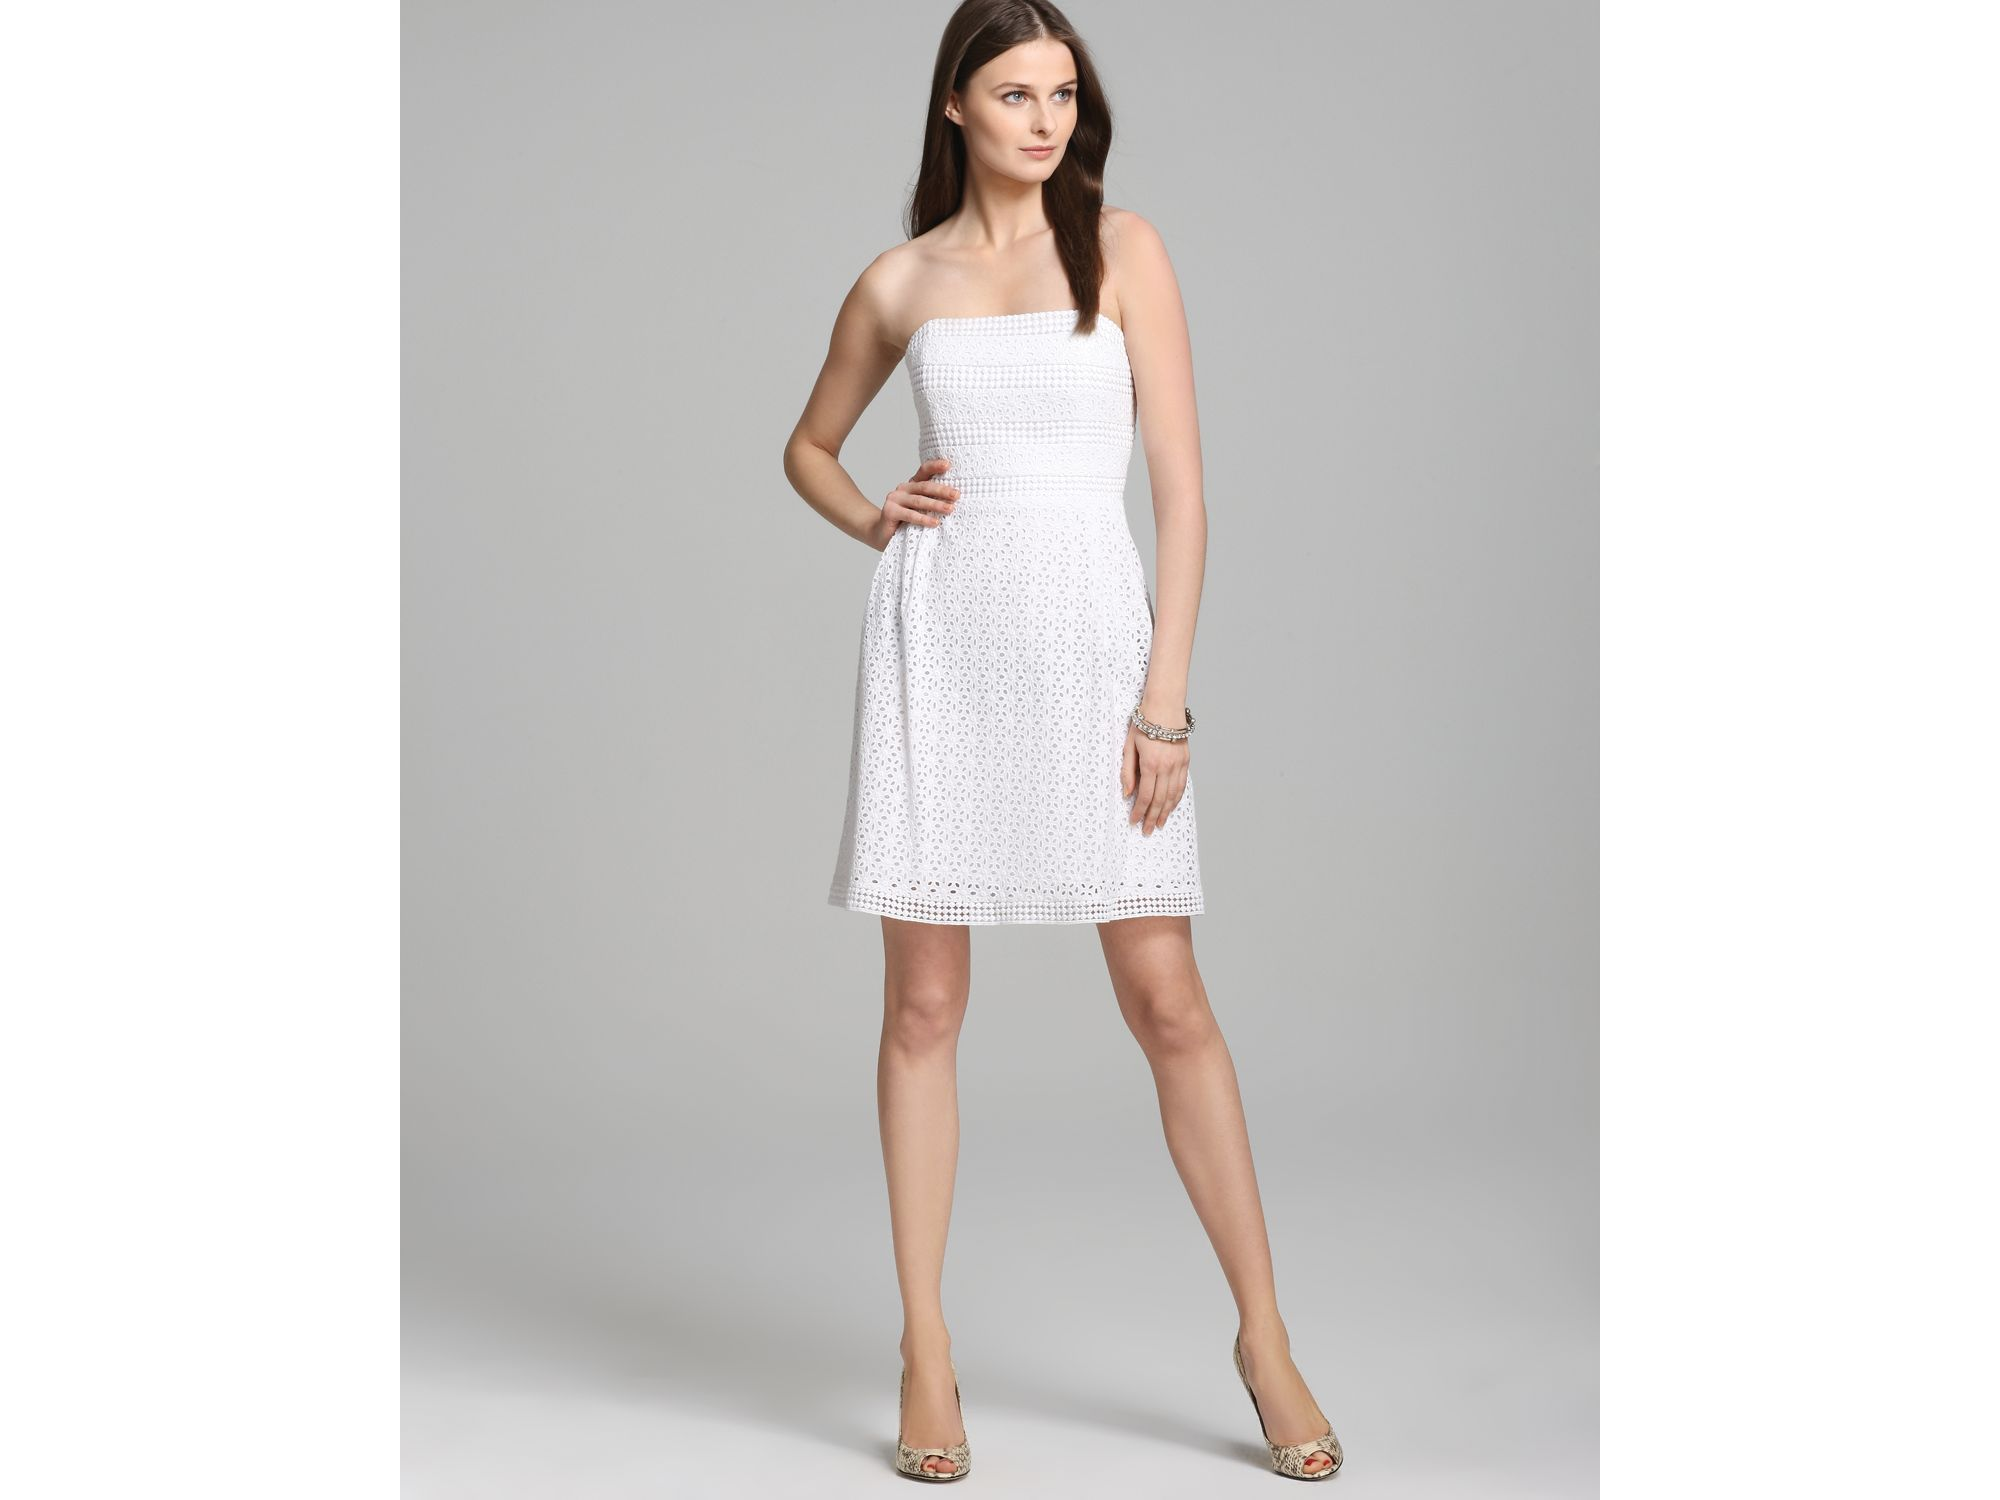 e209f2f908647 Laundry by Shelli Segal Strapless Dress Eyelet Fit Flare in White - Lyst